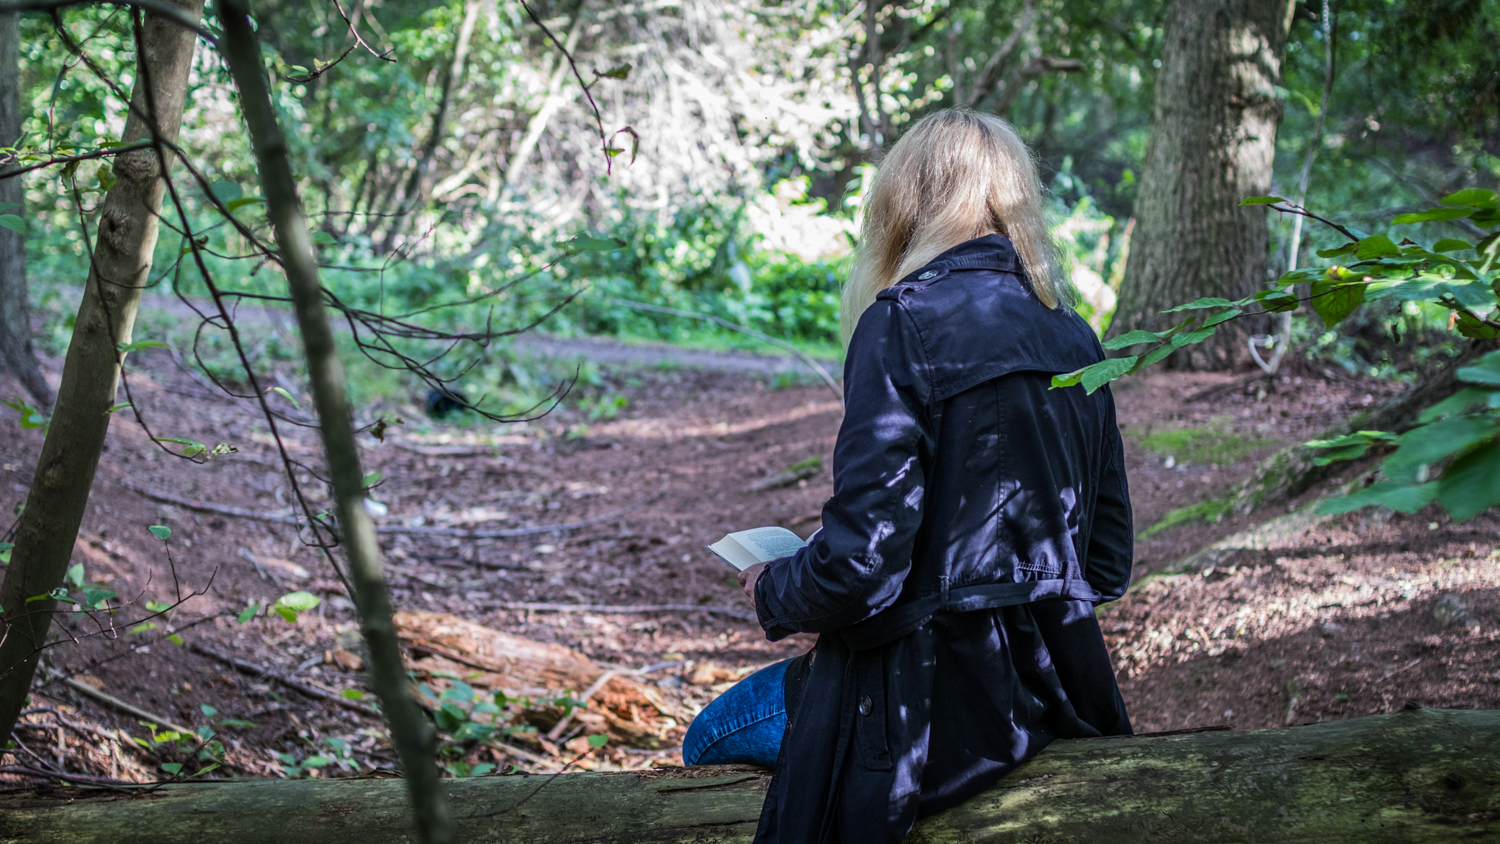 A young woman (me) reading a book in the forest